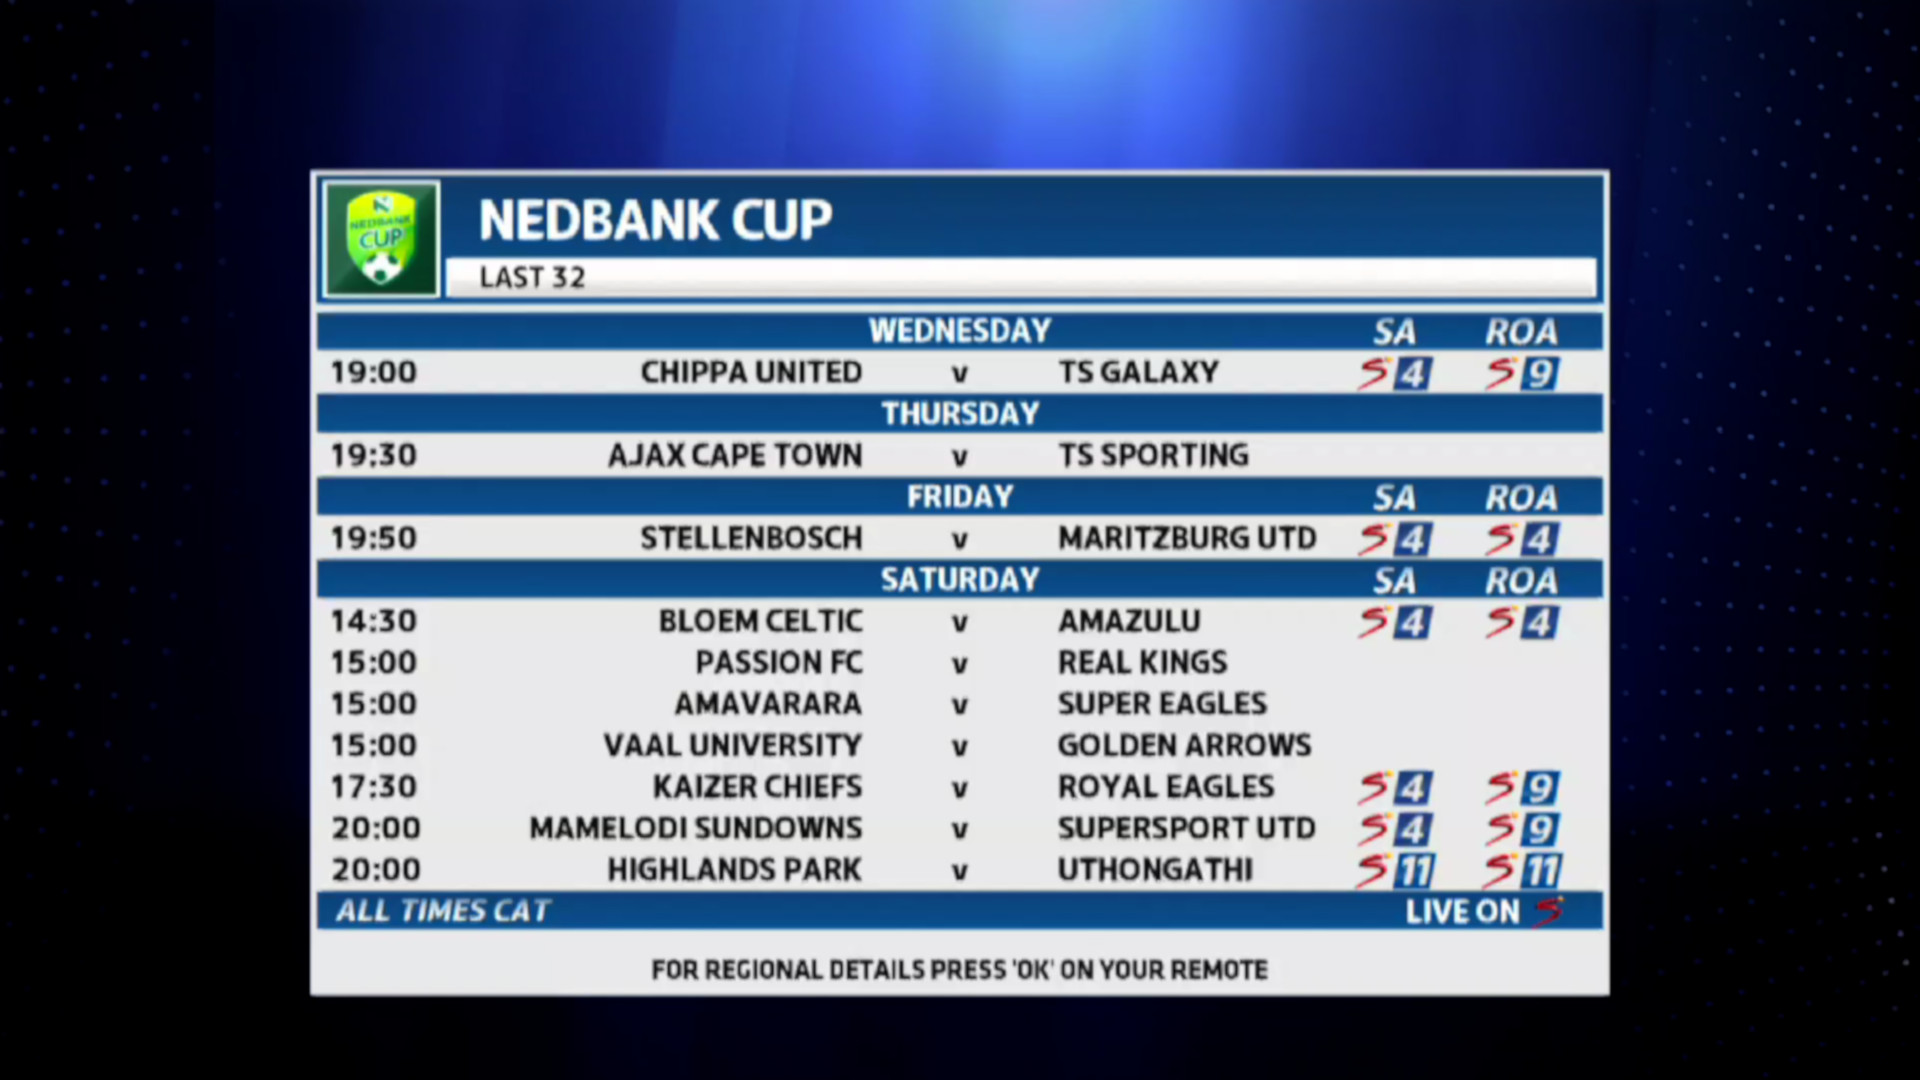 Nedbank Cup | Nedbank Cup TX times